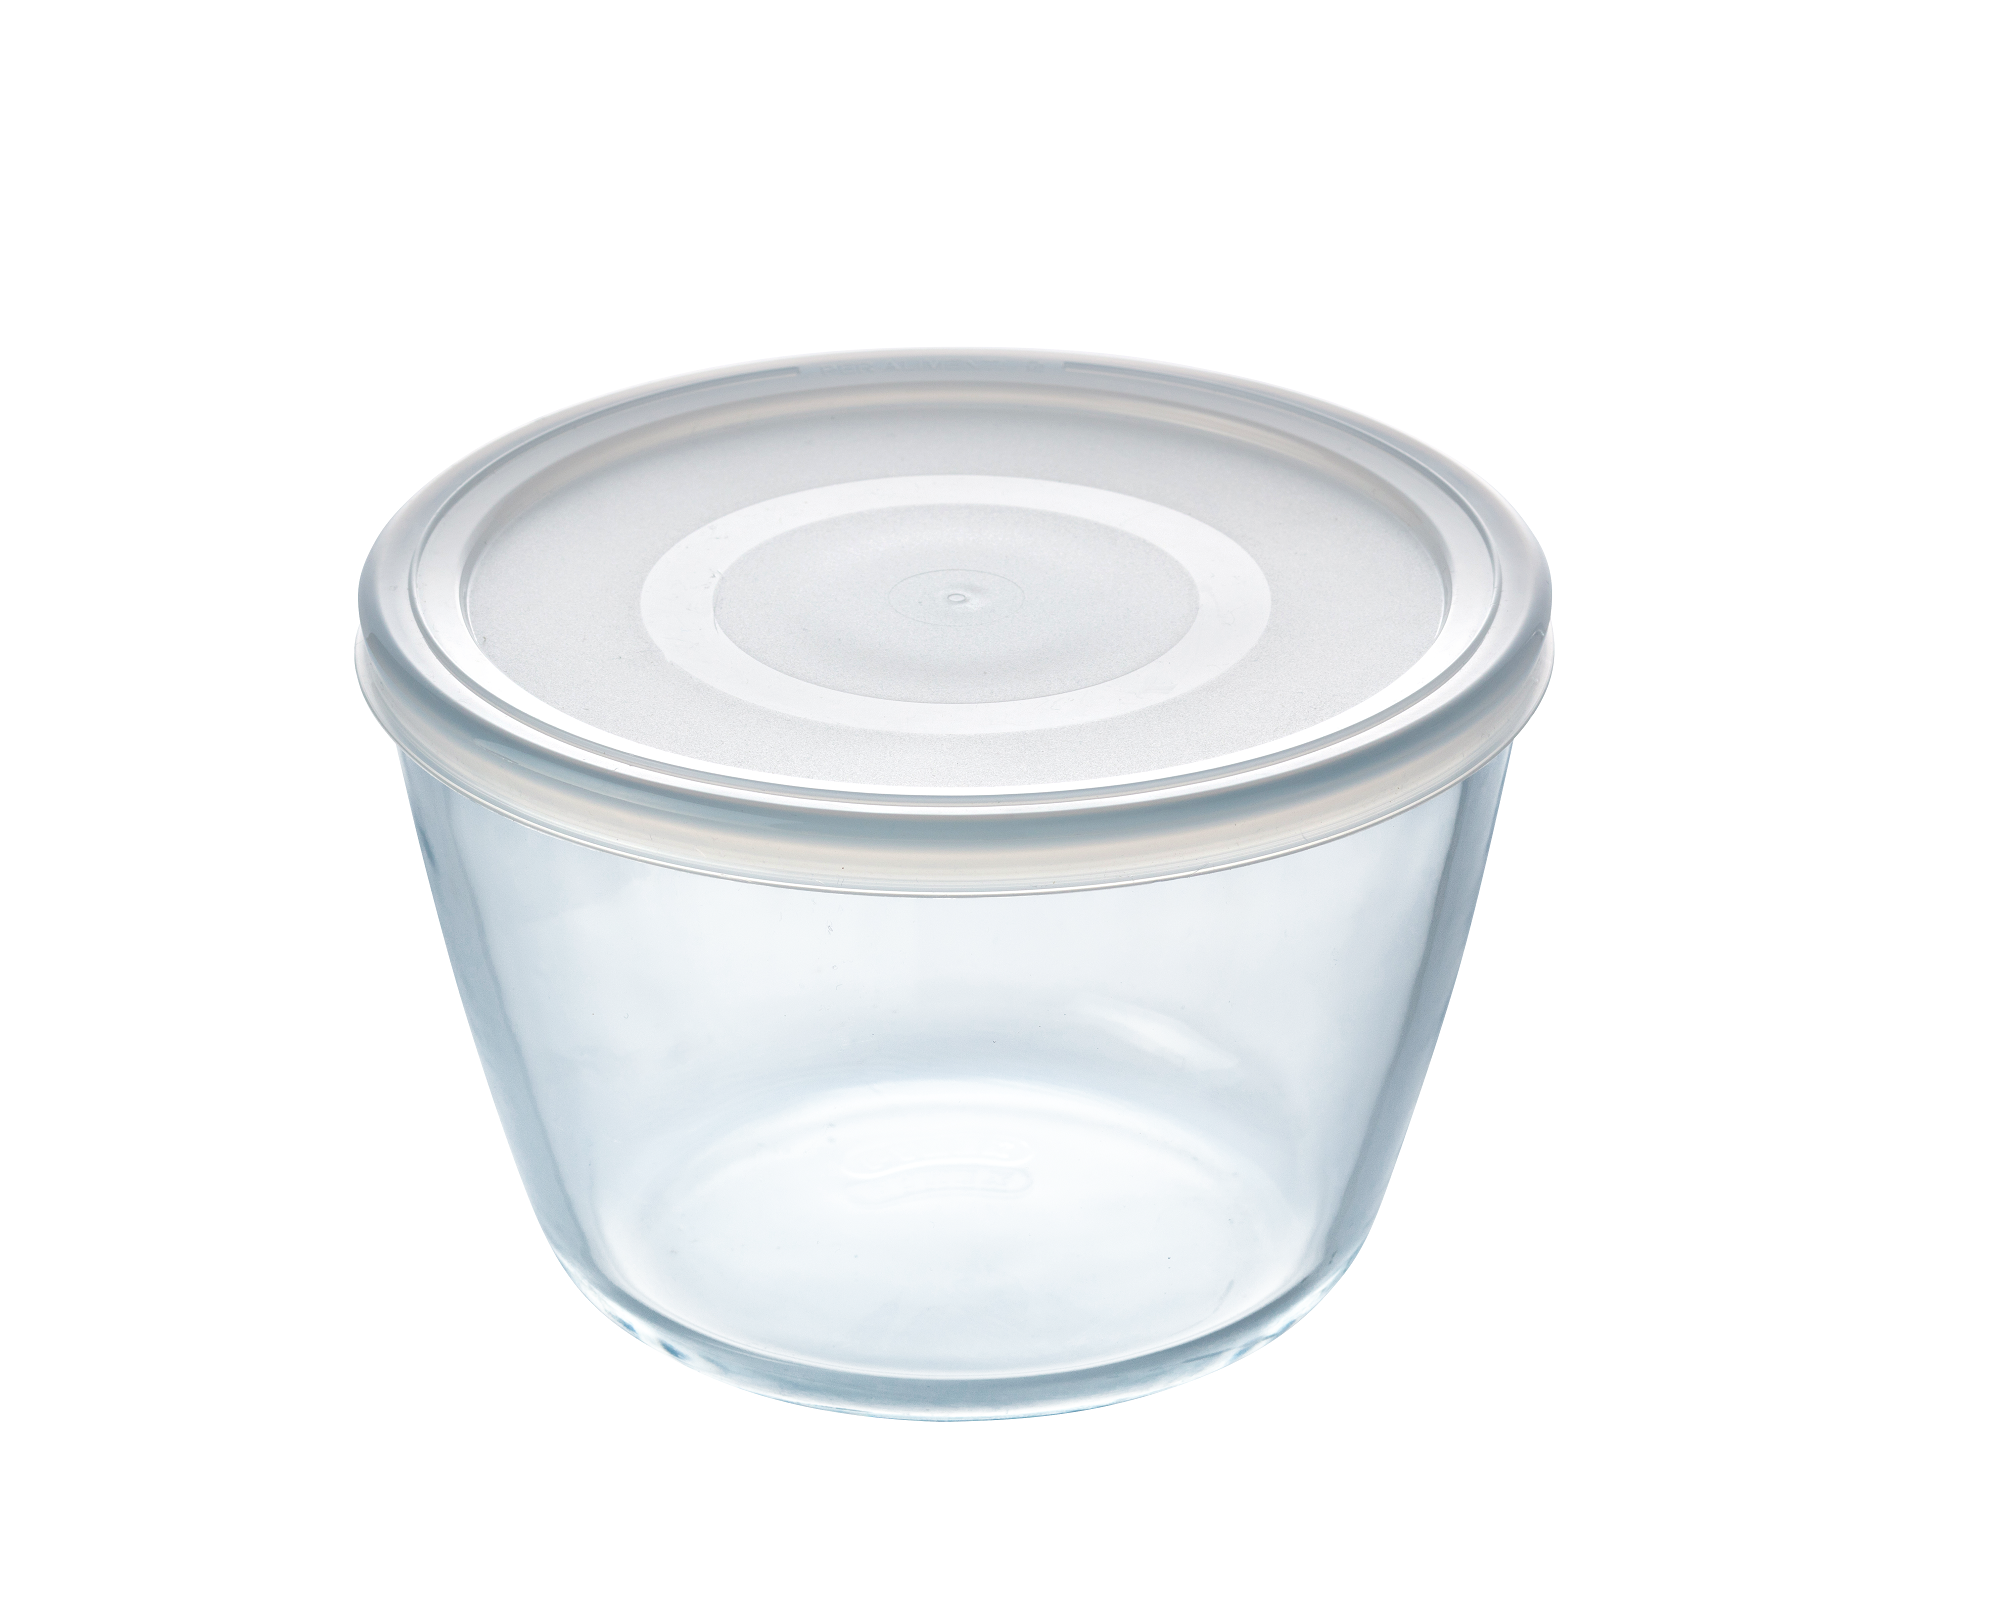 Pyrex Cook & Freeze Storage 1.6L Round with Clear Lid-1137641